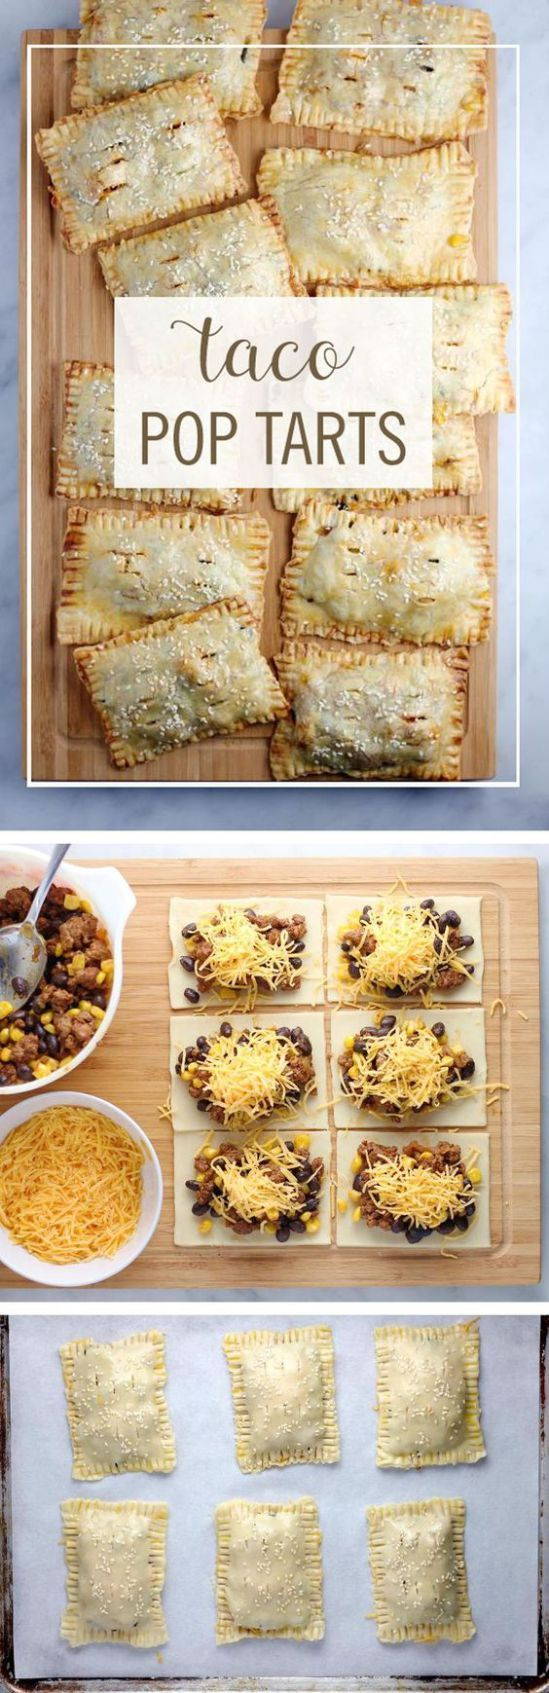 """Taco Pop Tarts Recipe via Babble """"These Taco Pop Tarts are a perfect way to turn your favorite breakfast pastry into dinner. Take your typical taco ingredients and turn them into this delicious on-the-go dinner."""" - The BEST 30 Minute Meals Recipes - Easy, Quick and Delicious Family Friendly Lunch and Dinner Ideas"""